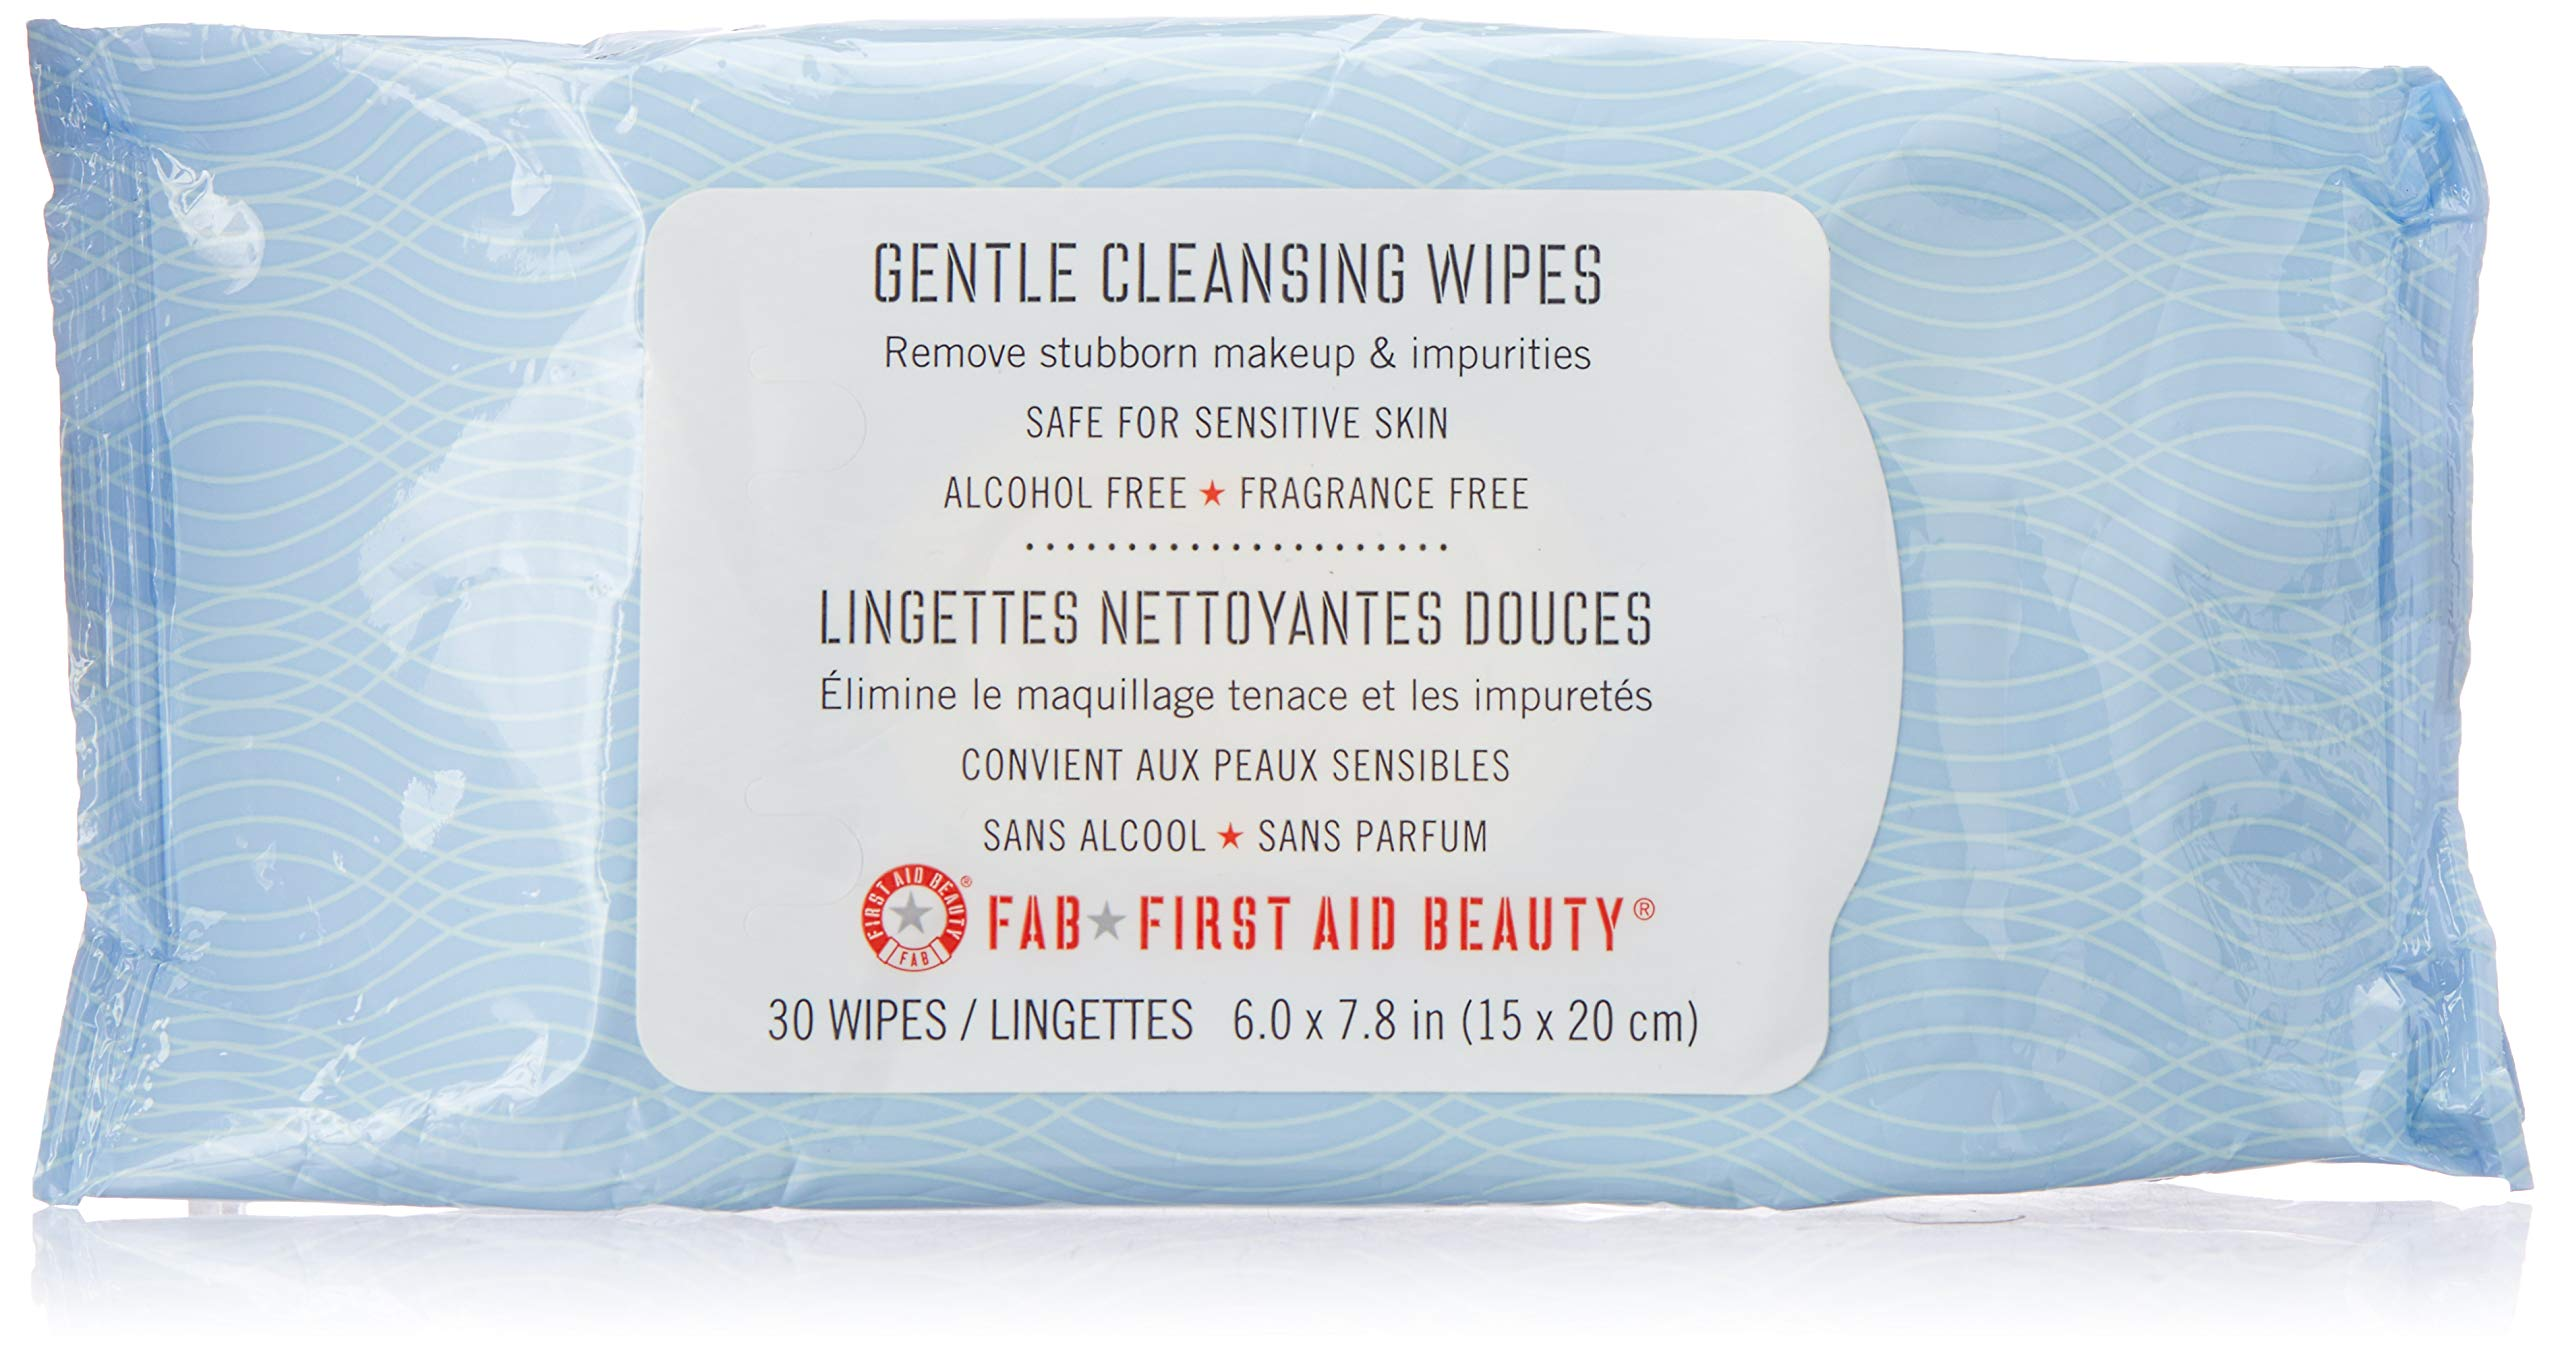 First Aid Beauty Gentle Cleansing Wipes, 30 Count by First Aid Beauty